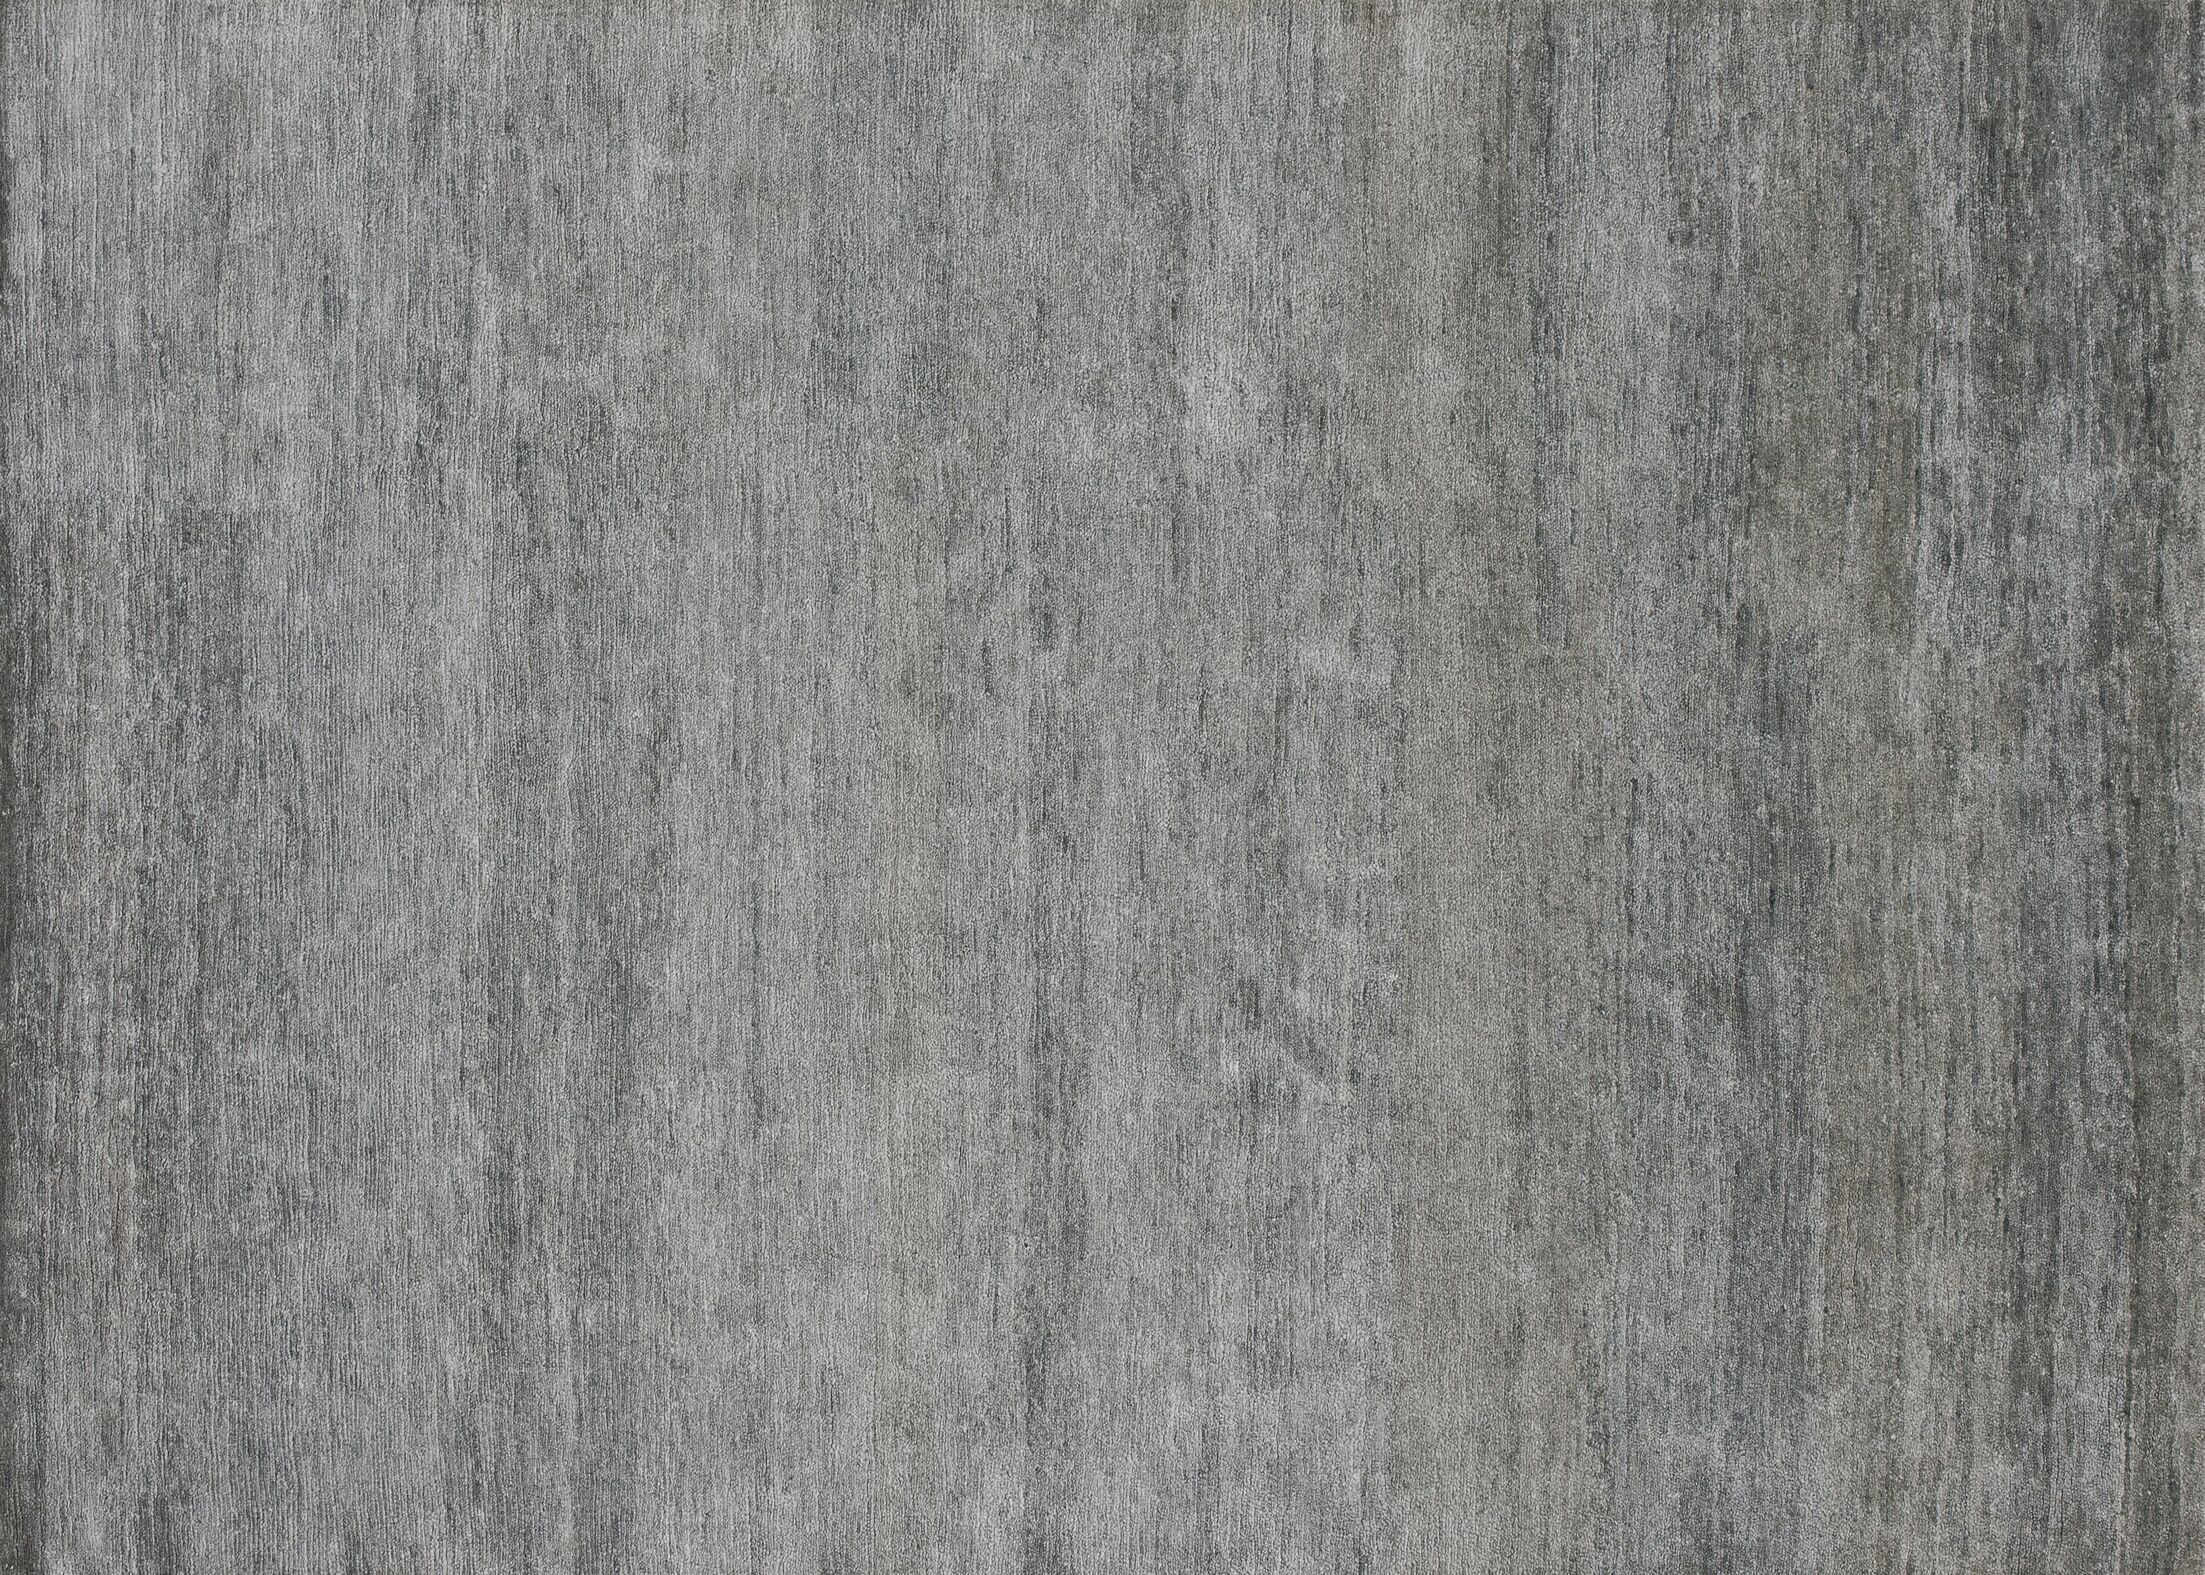 Hively Hand-Knotted Gray Area Rug Rug Size: Rectangle 8'6